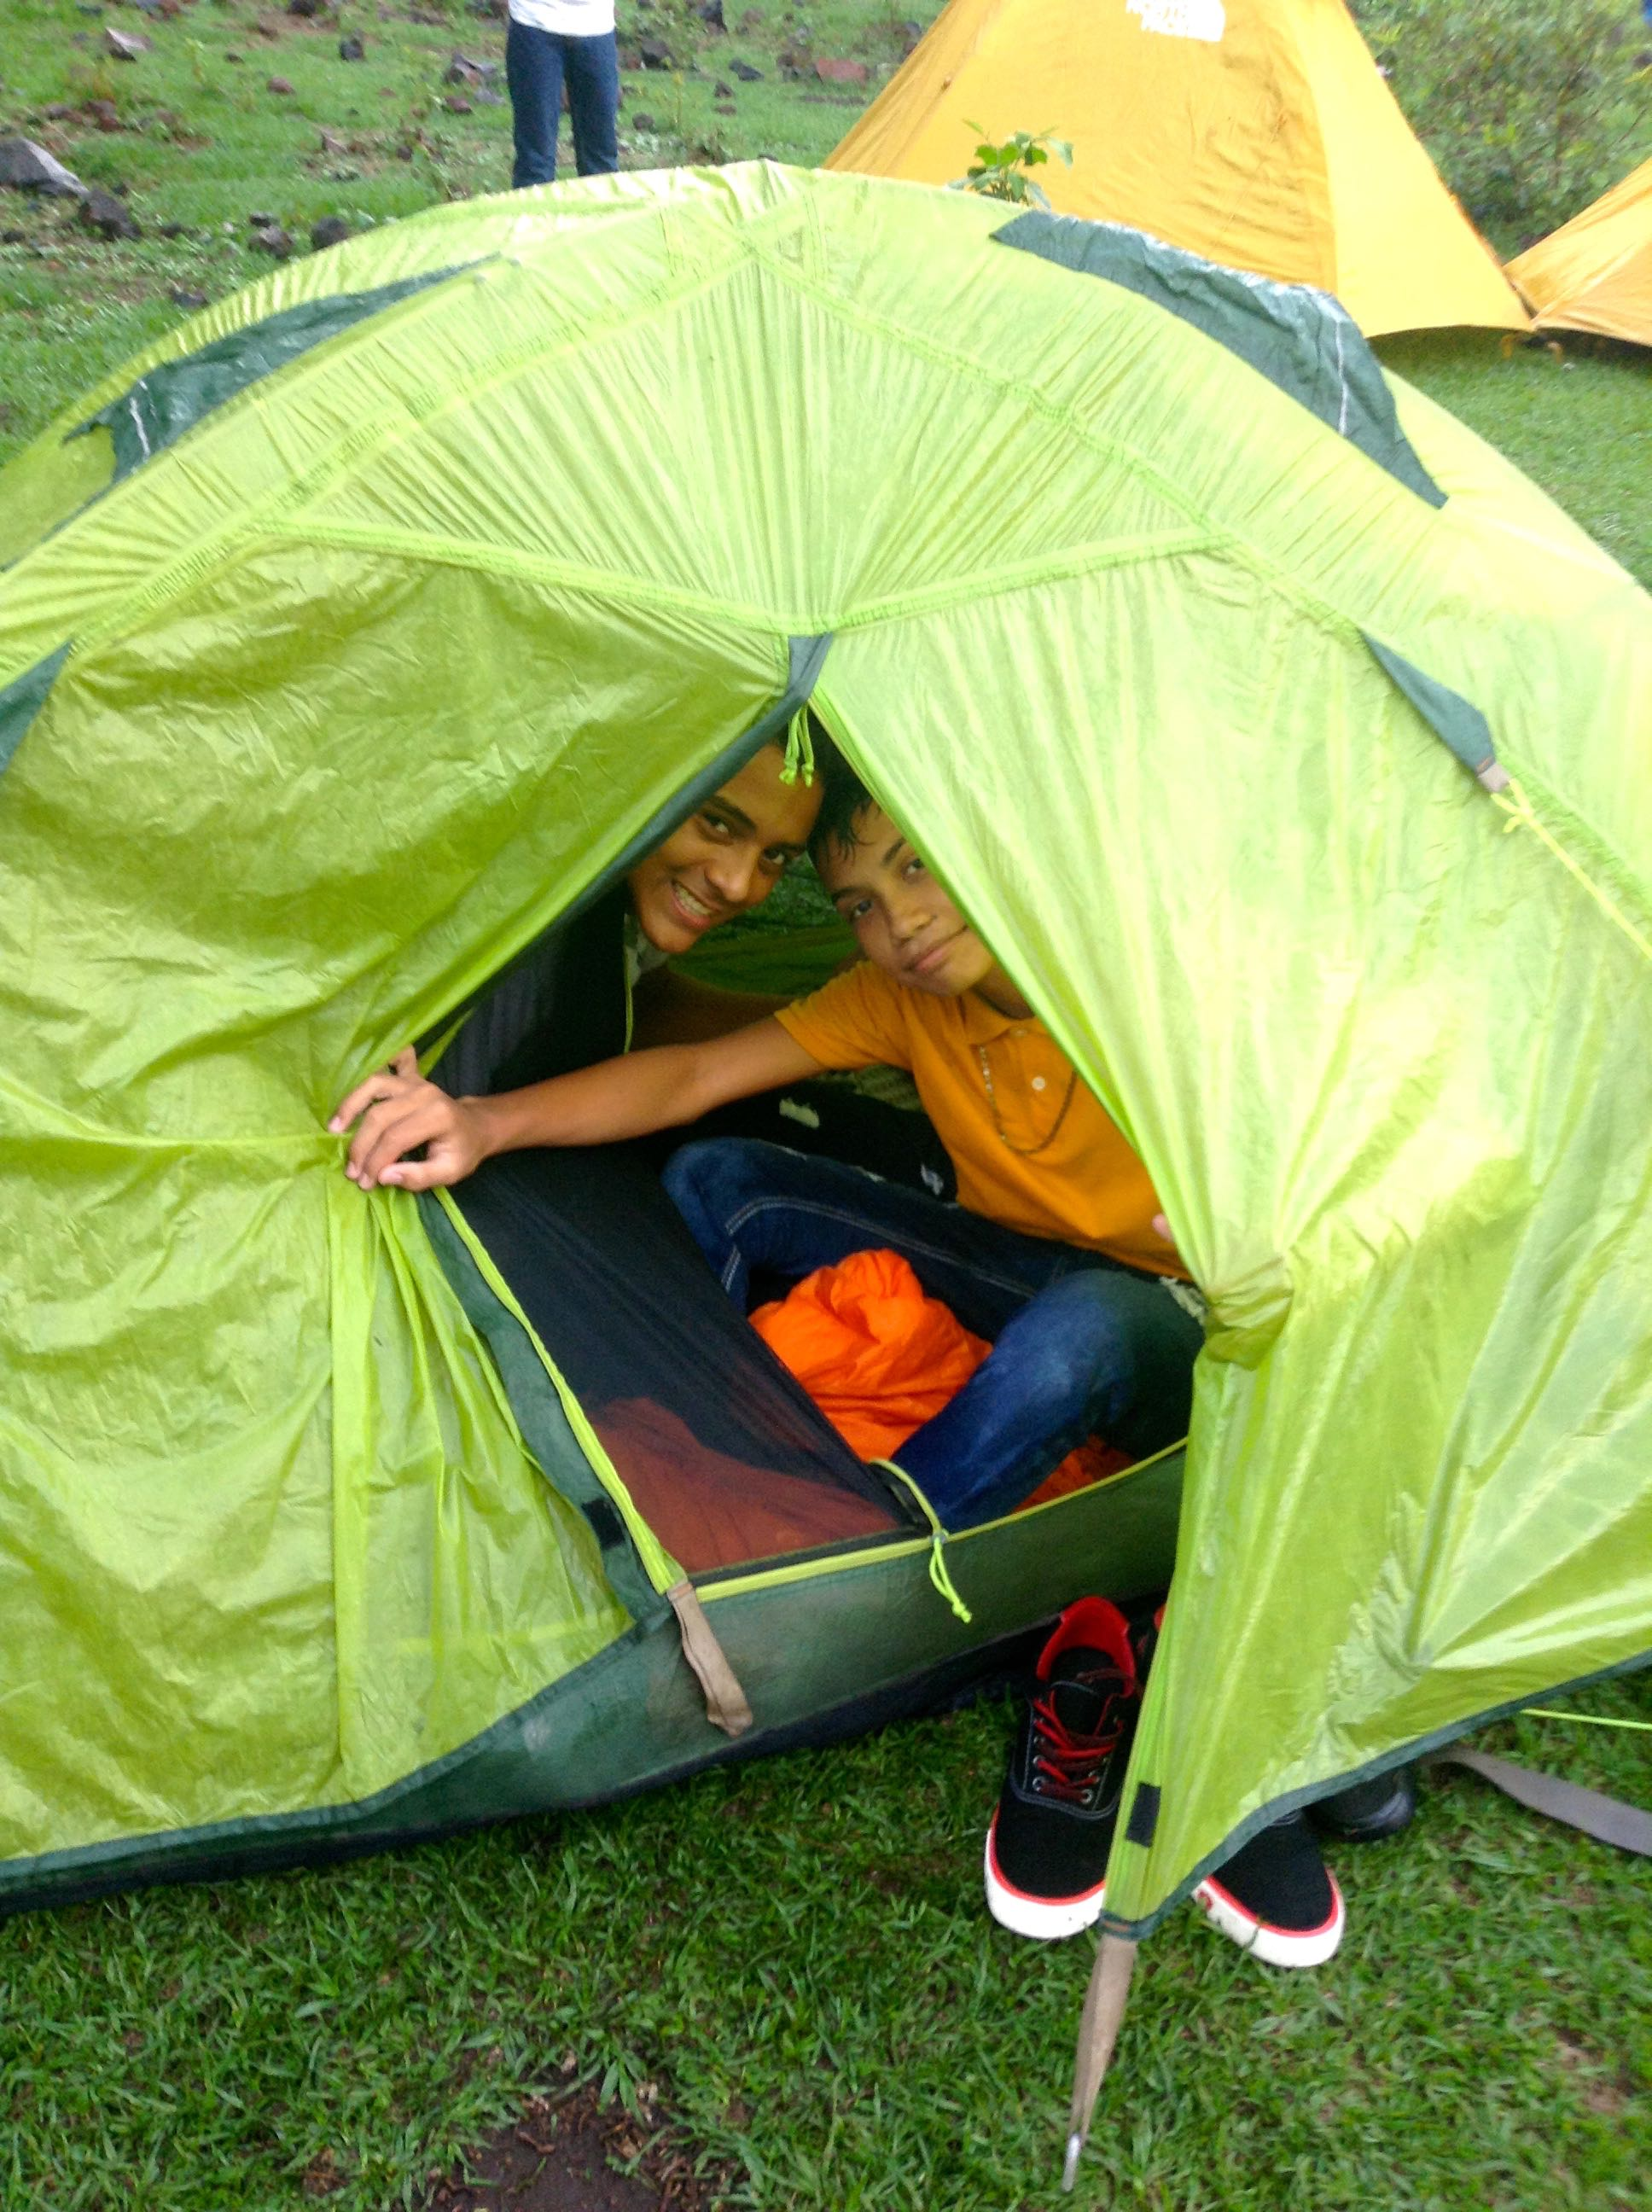 Jose Manuel and Luis loved hanging out in their tent.